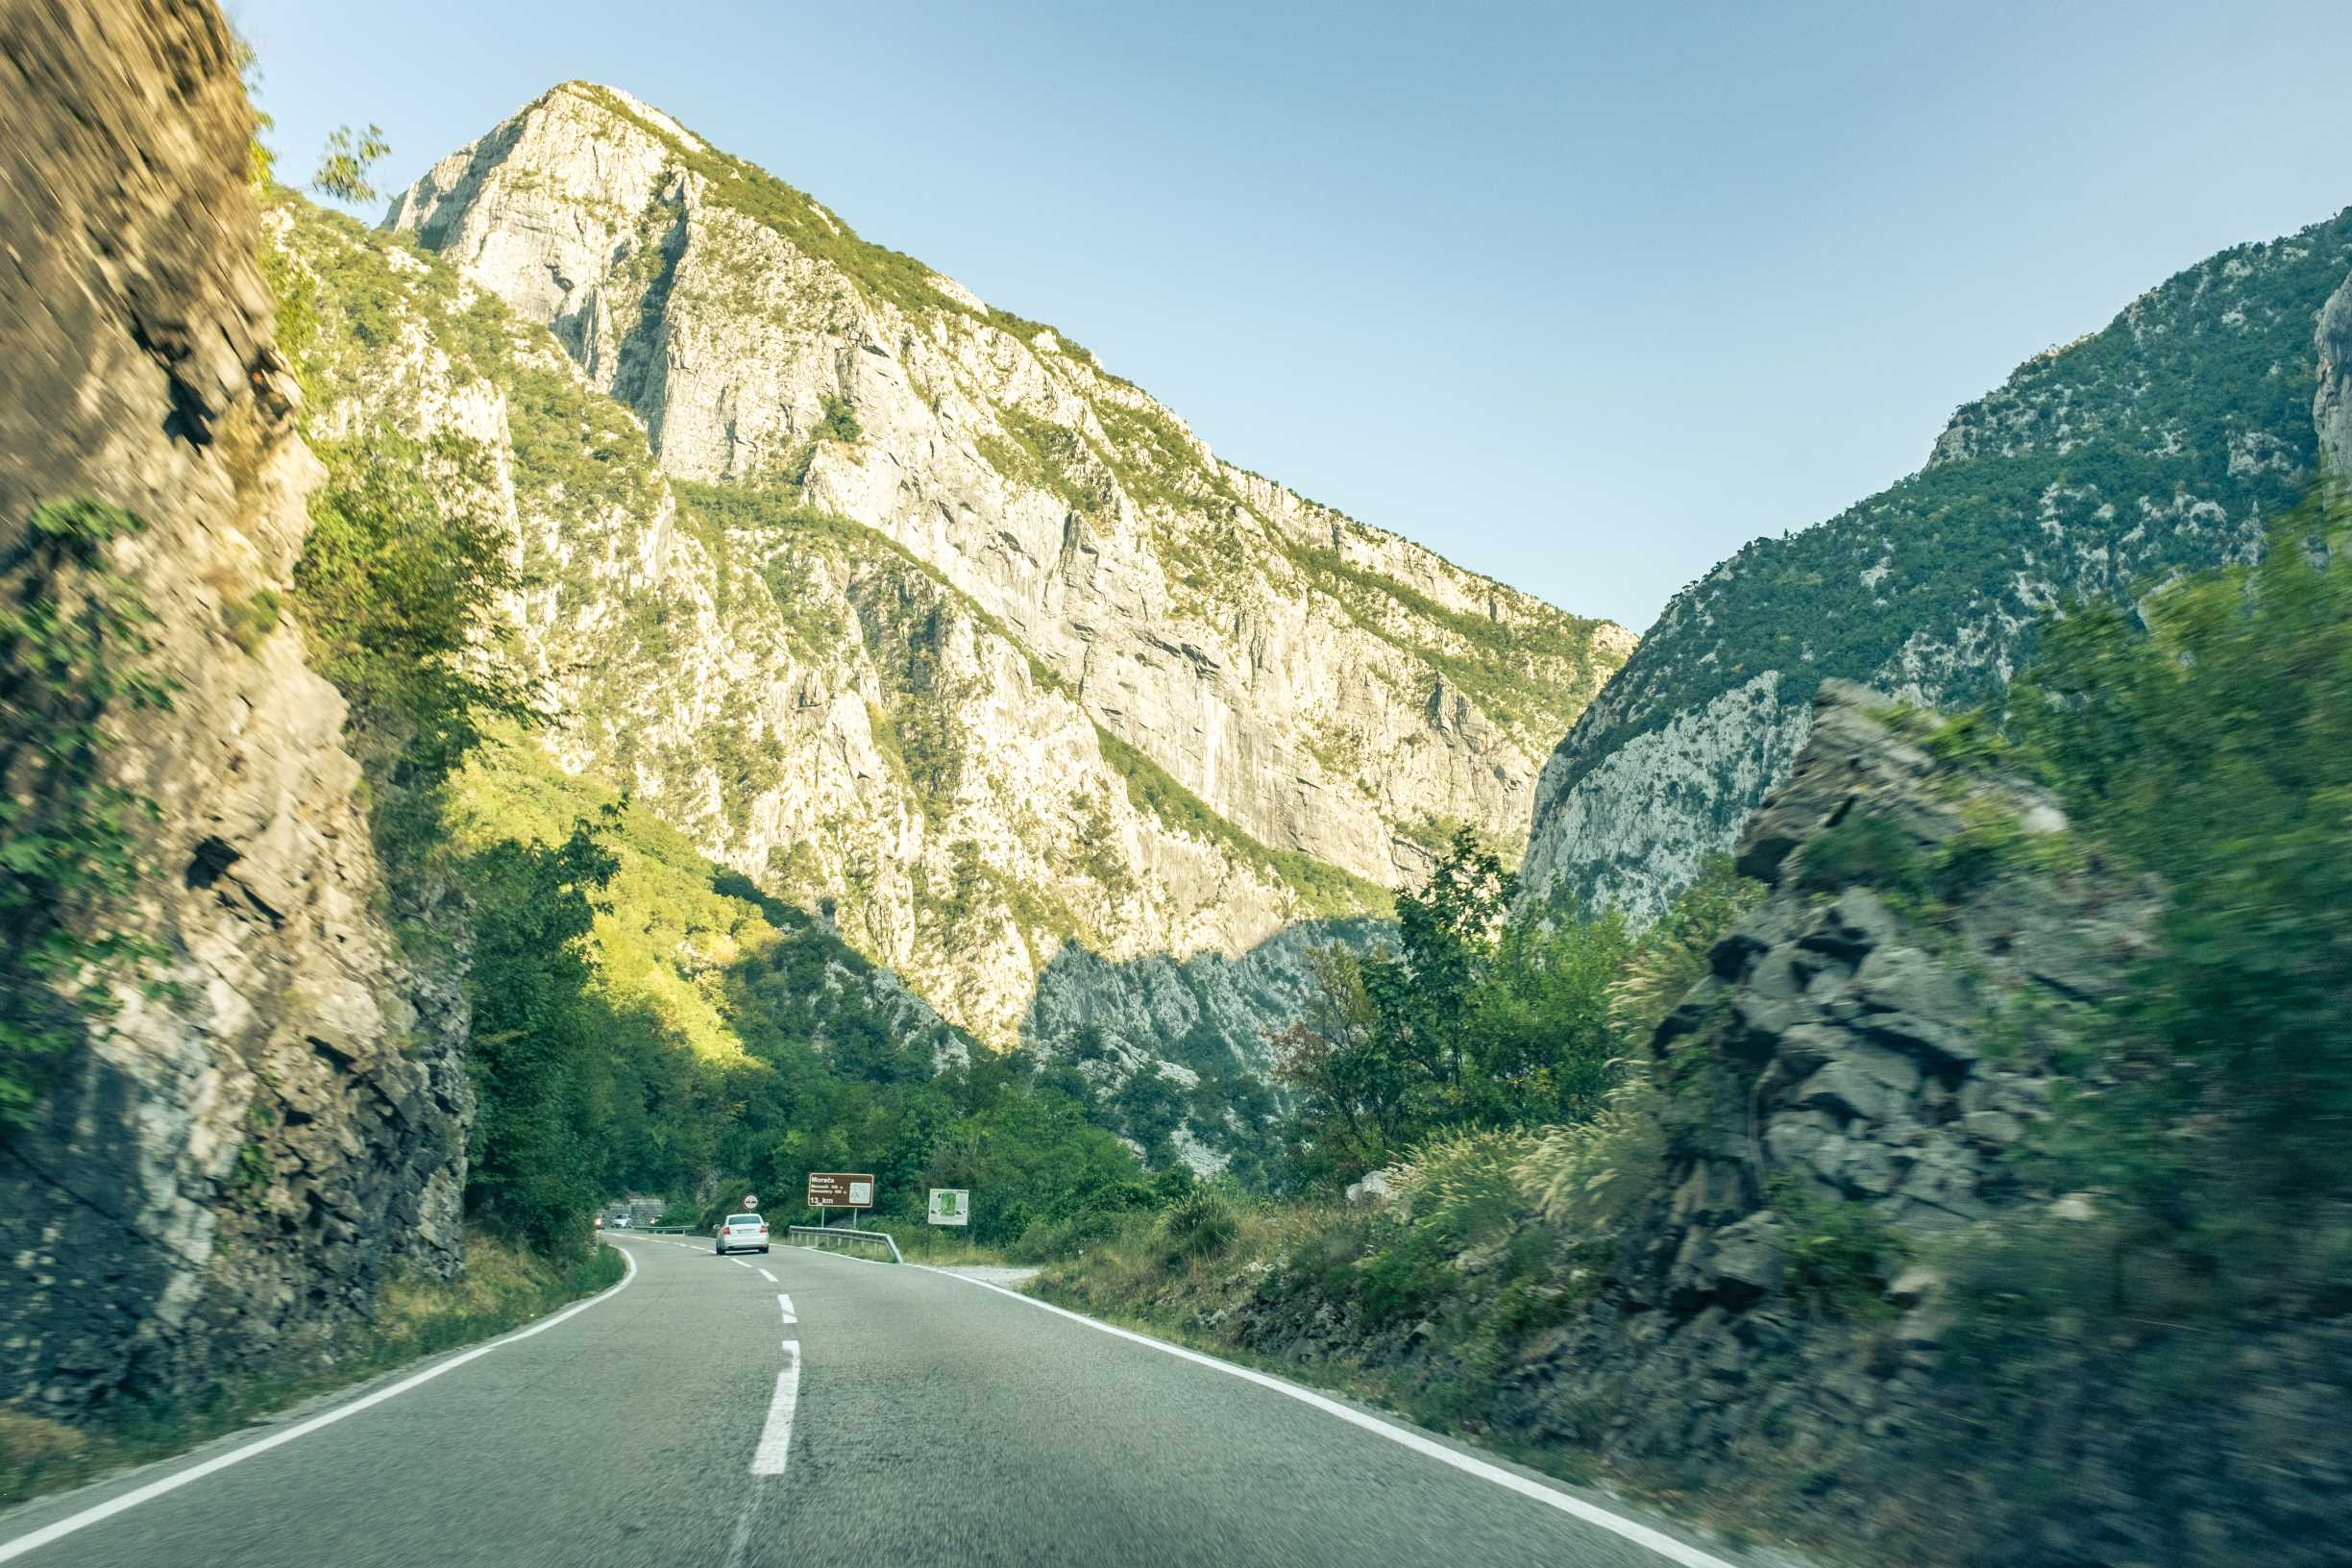 Driving through the Montenegrin side of the Accursed Mountains